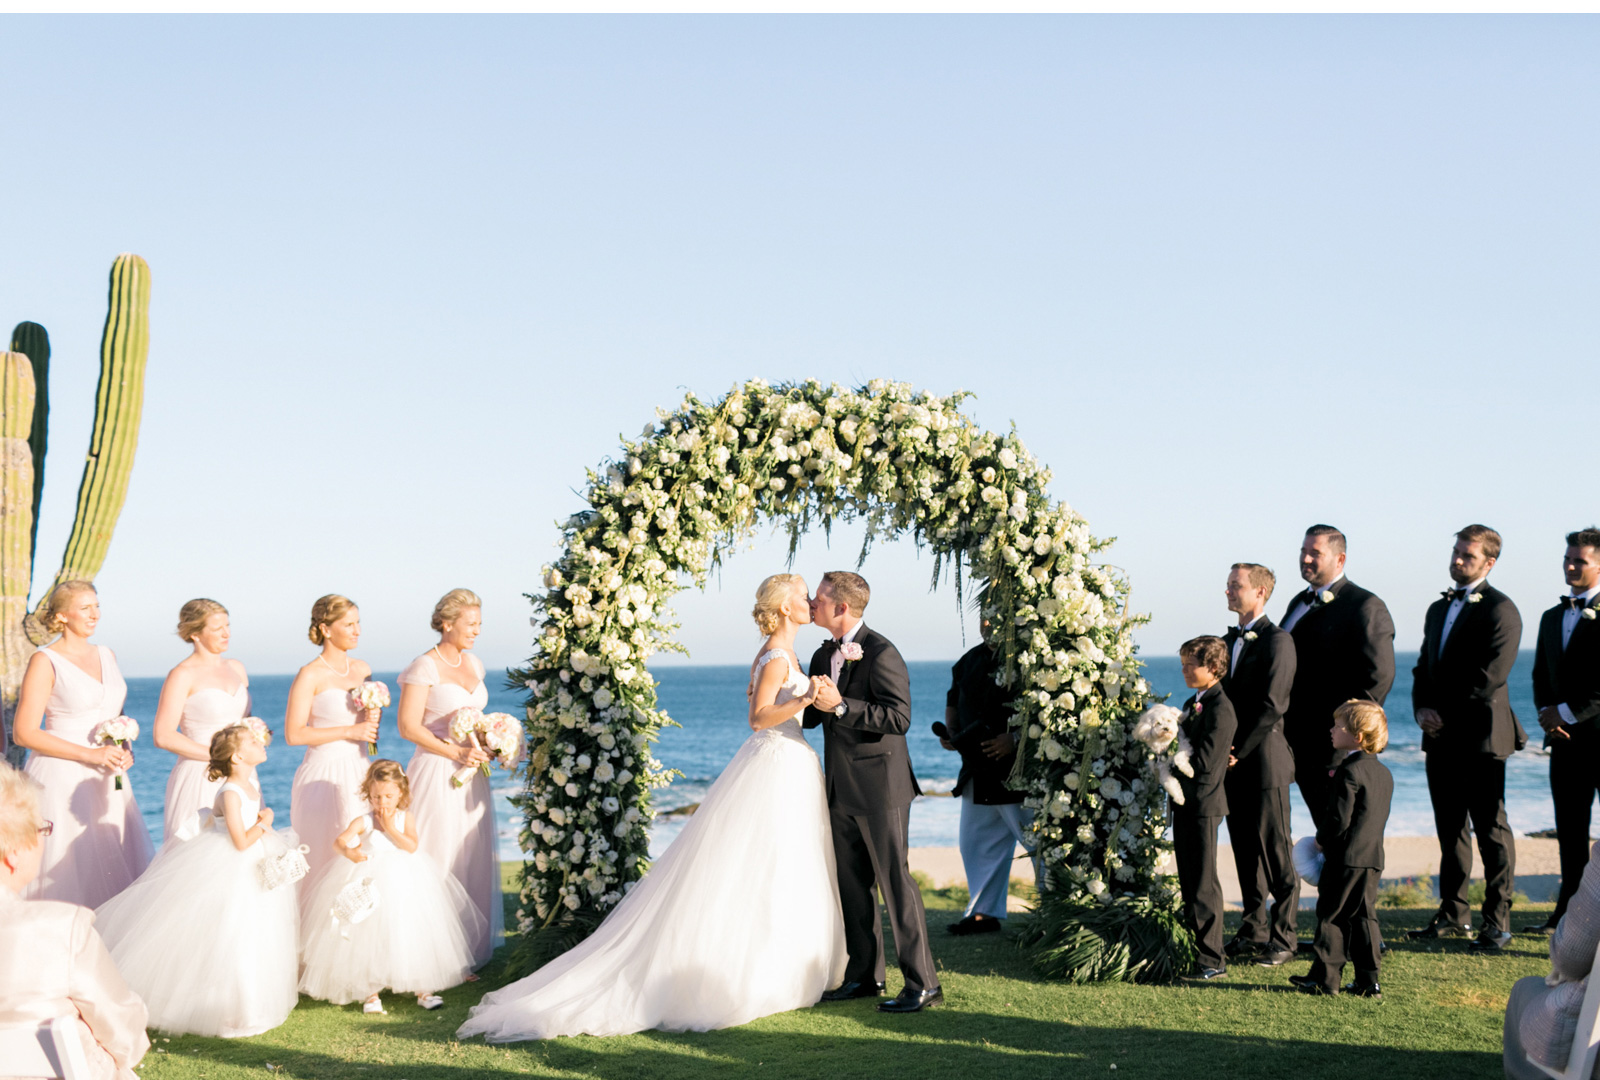 Style-Me-Pretty-Cabo-Wedding-Natalie-Schutt-Photography_02.jpg